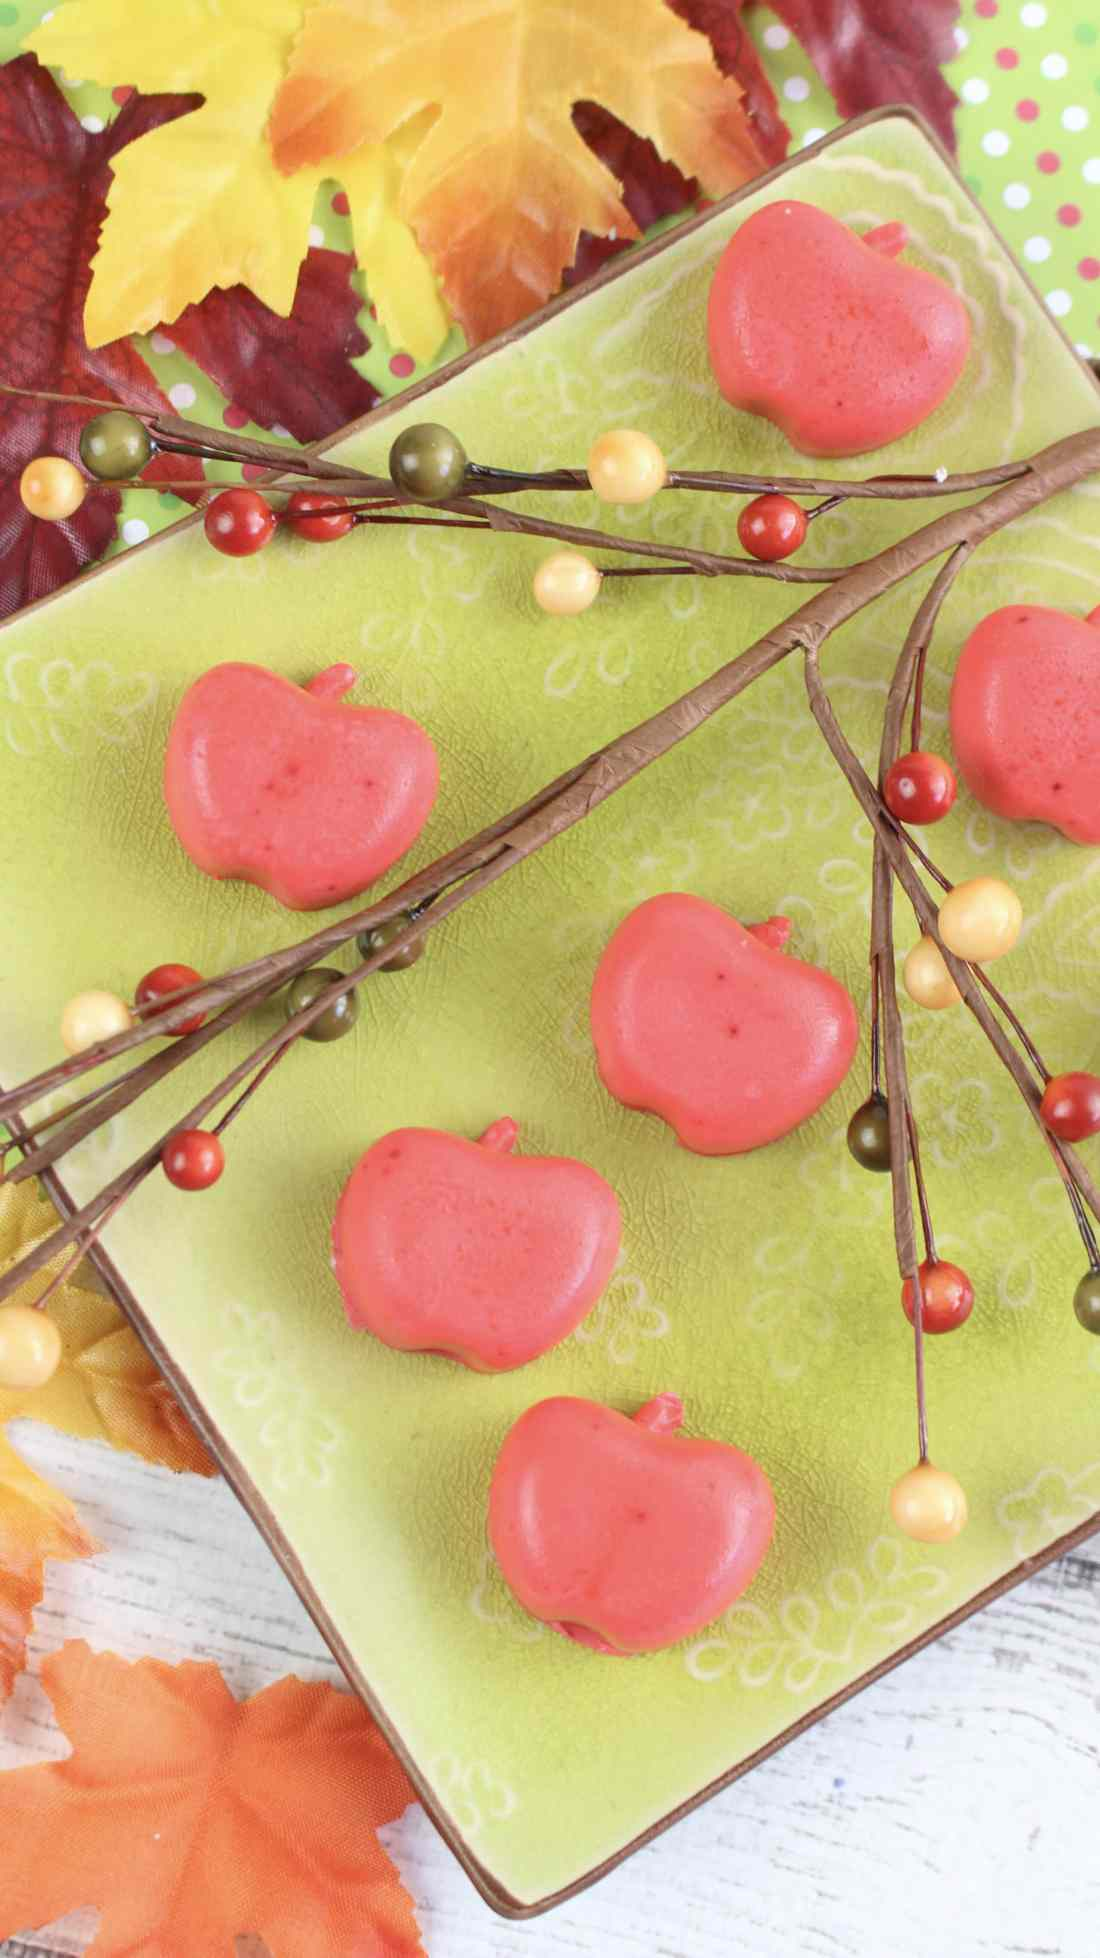 Learn How To Make Apple Soap for a cute gift for the holidays. Create your very own Apple Soap's to give away as gifts for the holidays or decorate your home.